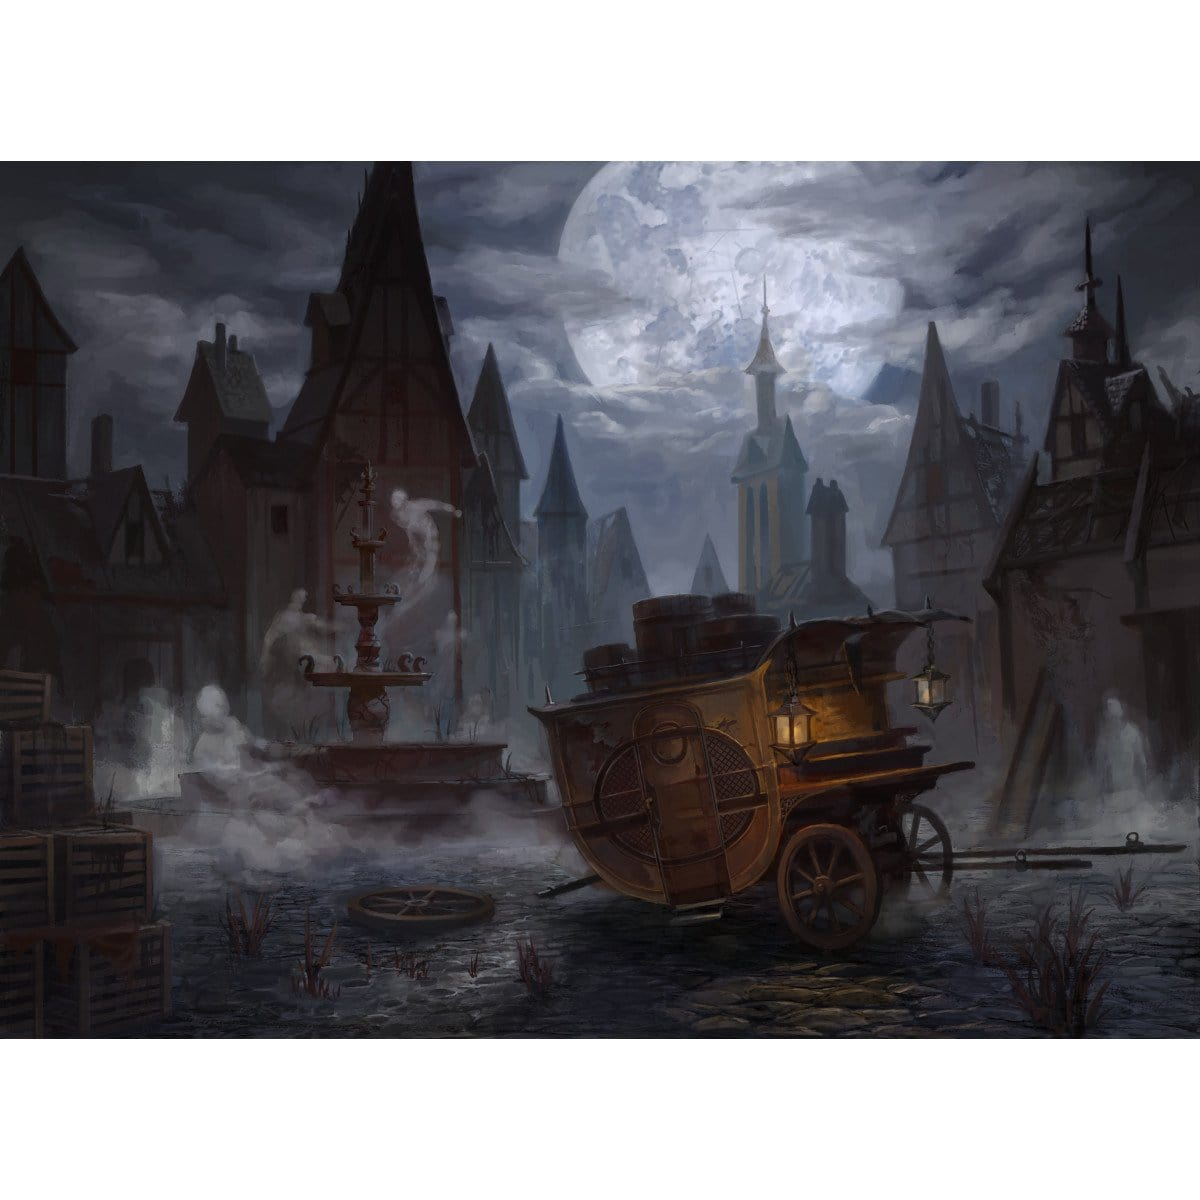 Ghost Quarter Print - Print - Original Magic Art - Accessories for Magic the Gathering and other card games